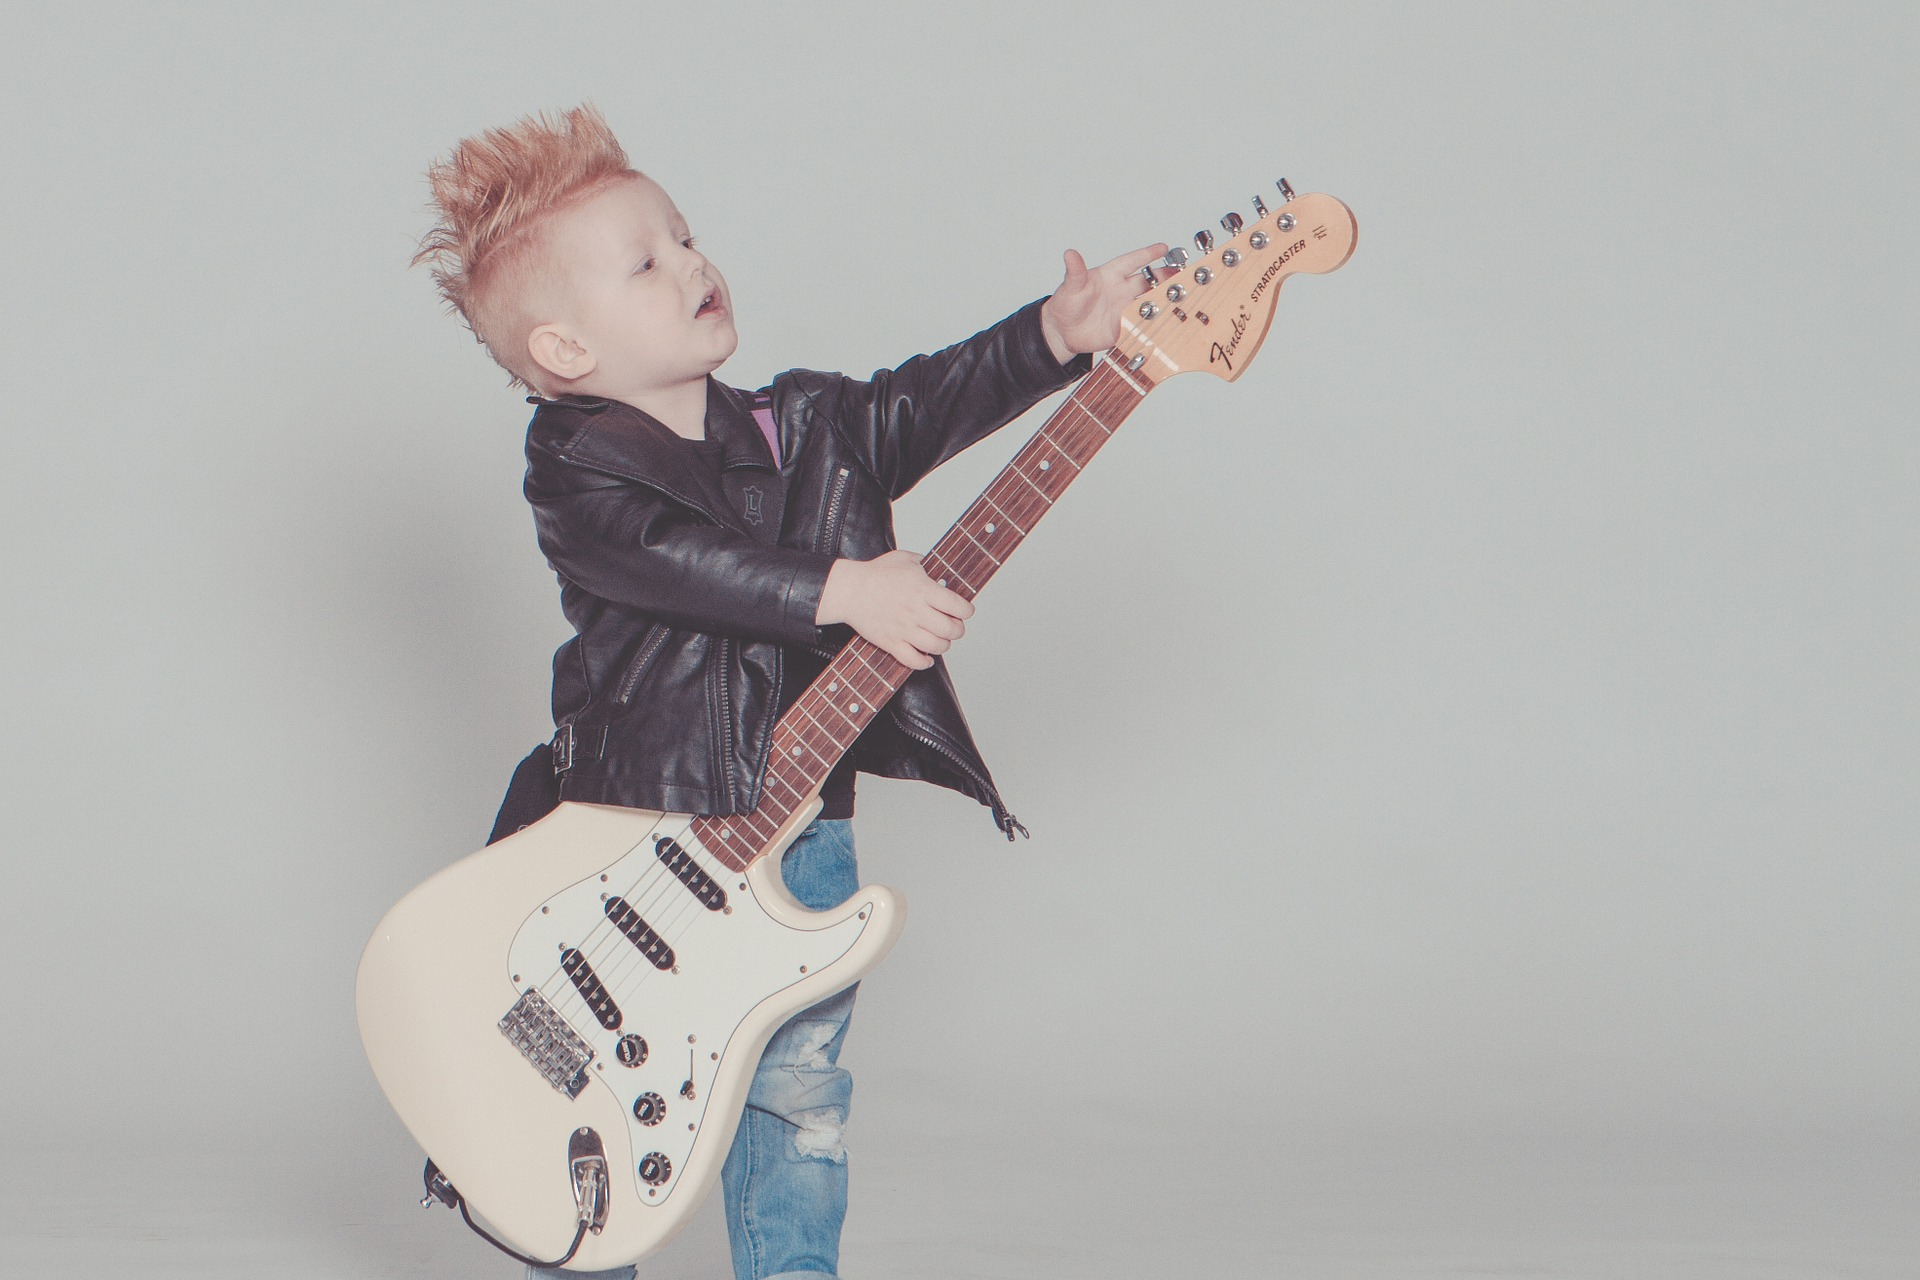 Child in leather jacket with a rock guitar. Learning through music can be a brilliant way to learn at Treforys tiny tots day childcare in Swansea